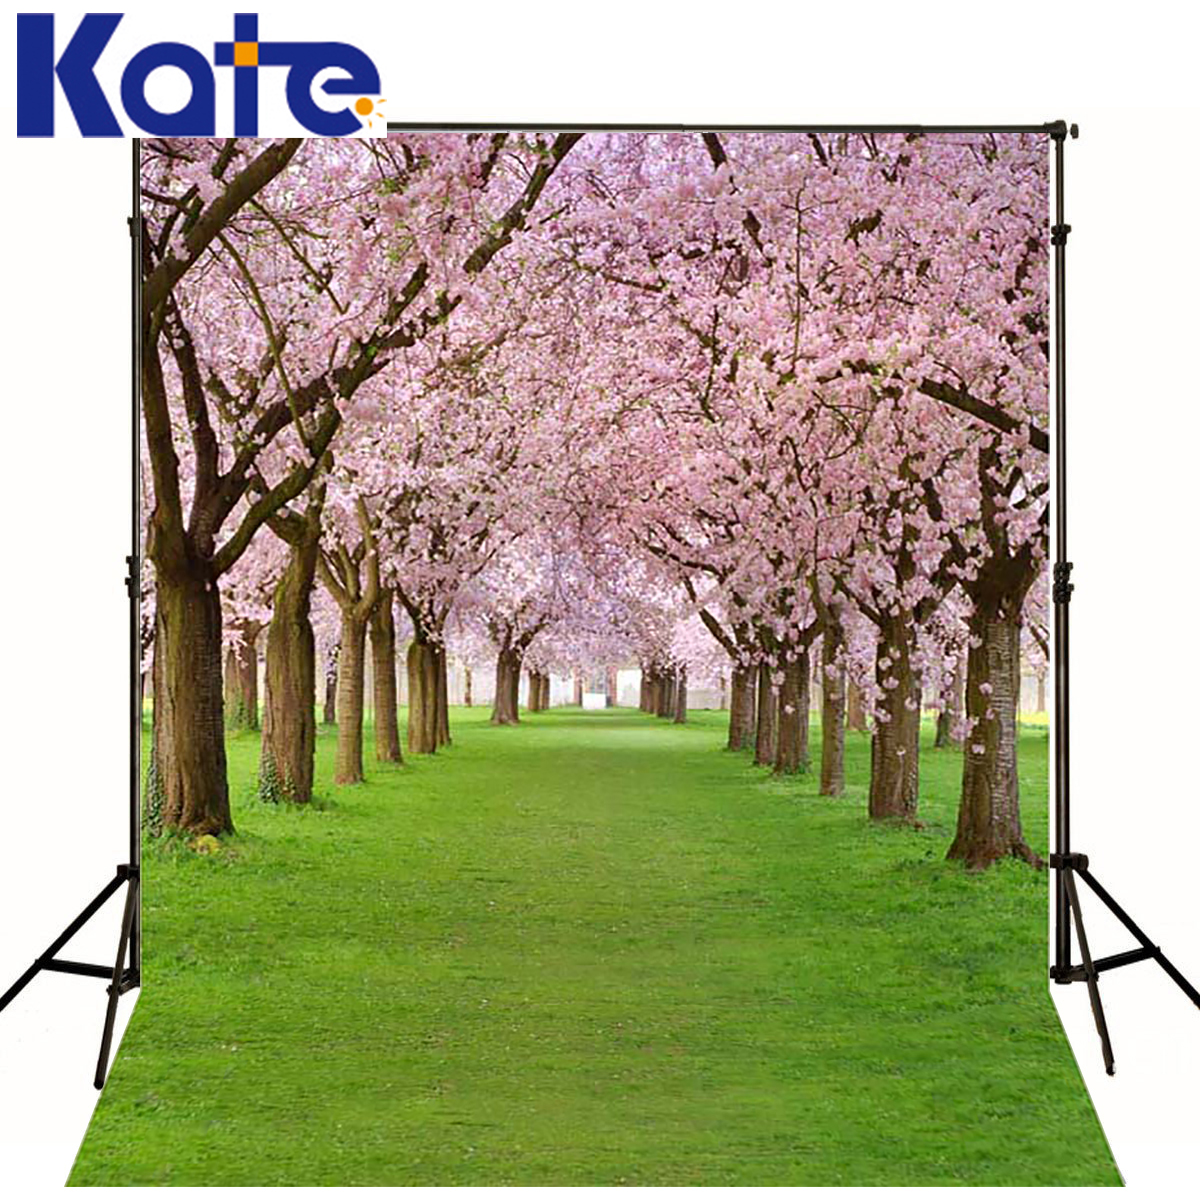 KATE Photography Backdrops Spring Backgrounds Newborn Green Lawn Floral Backdrops Photography Scenery Backdrop for Photo Studio 5ft 7ft photography backdrops spring pink hazy newborn photography background fabric studio backdrops vintage backgrounds